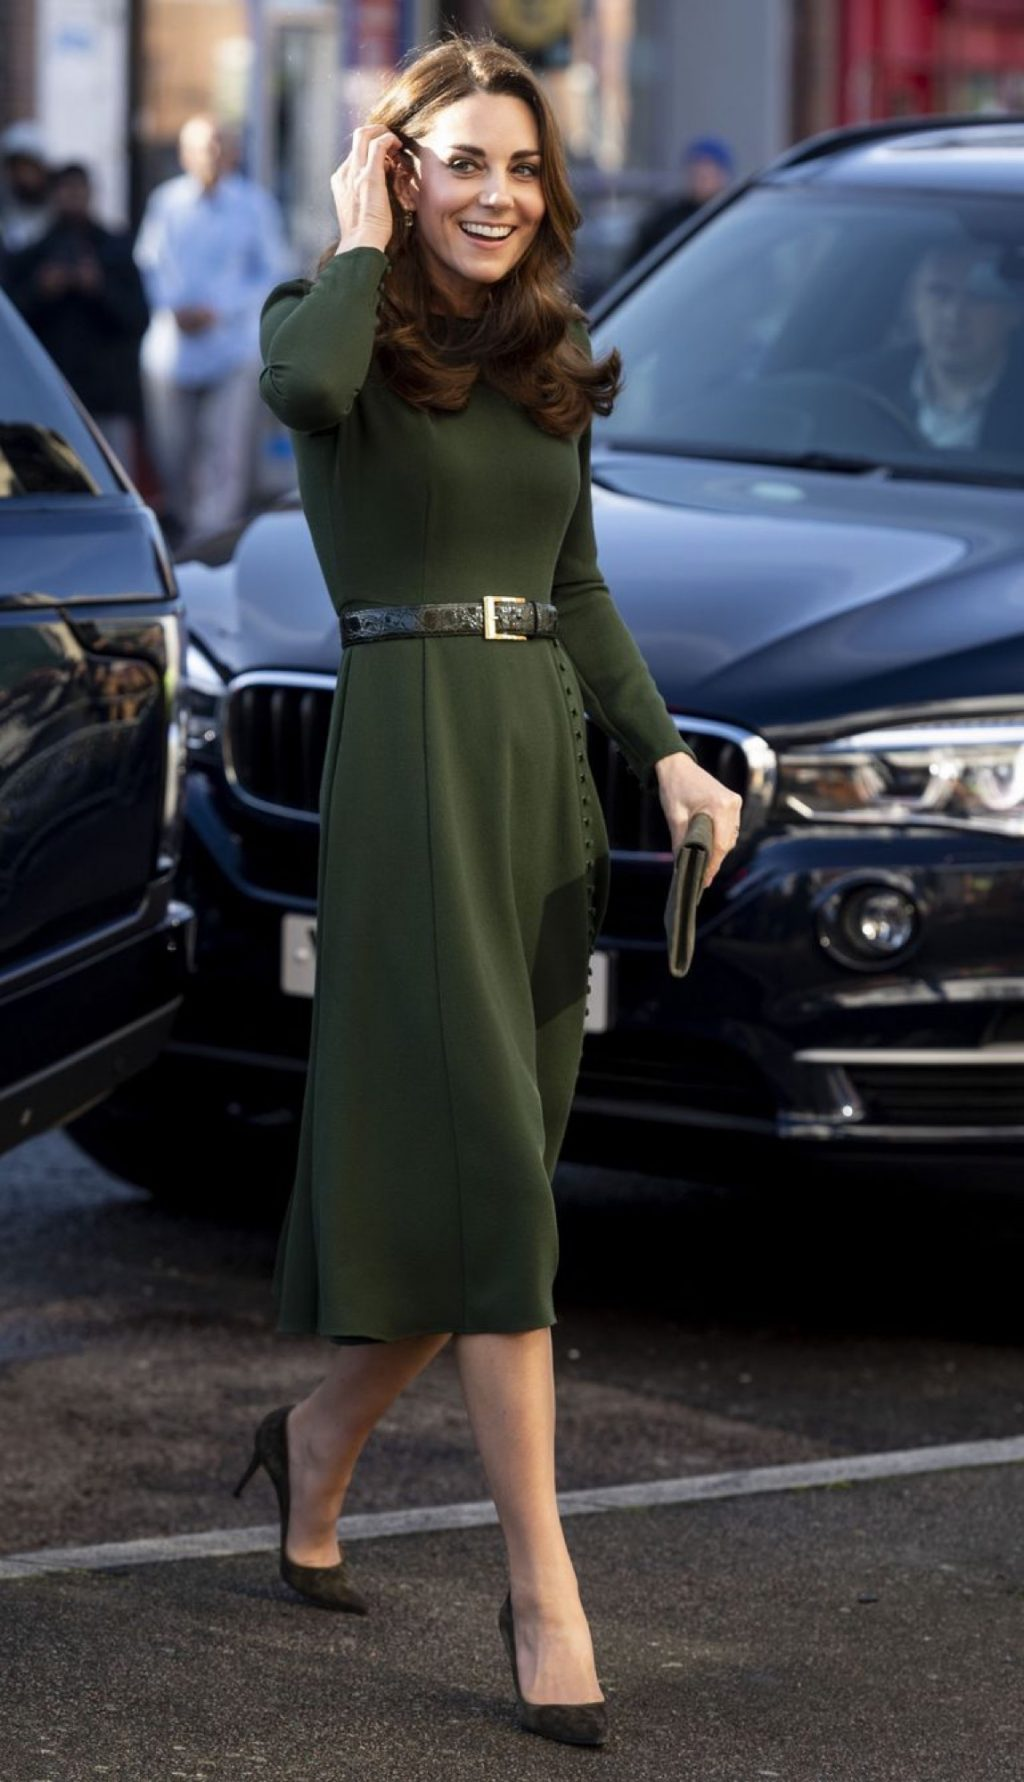 Kate Middleton's Latest Look Has a Surprisingly Empowering Message